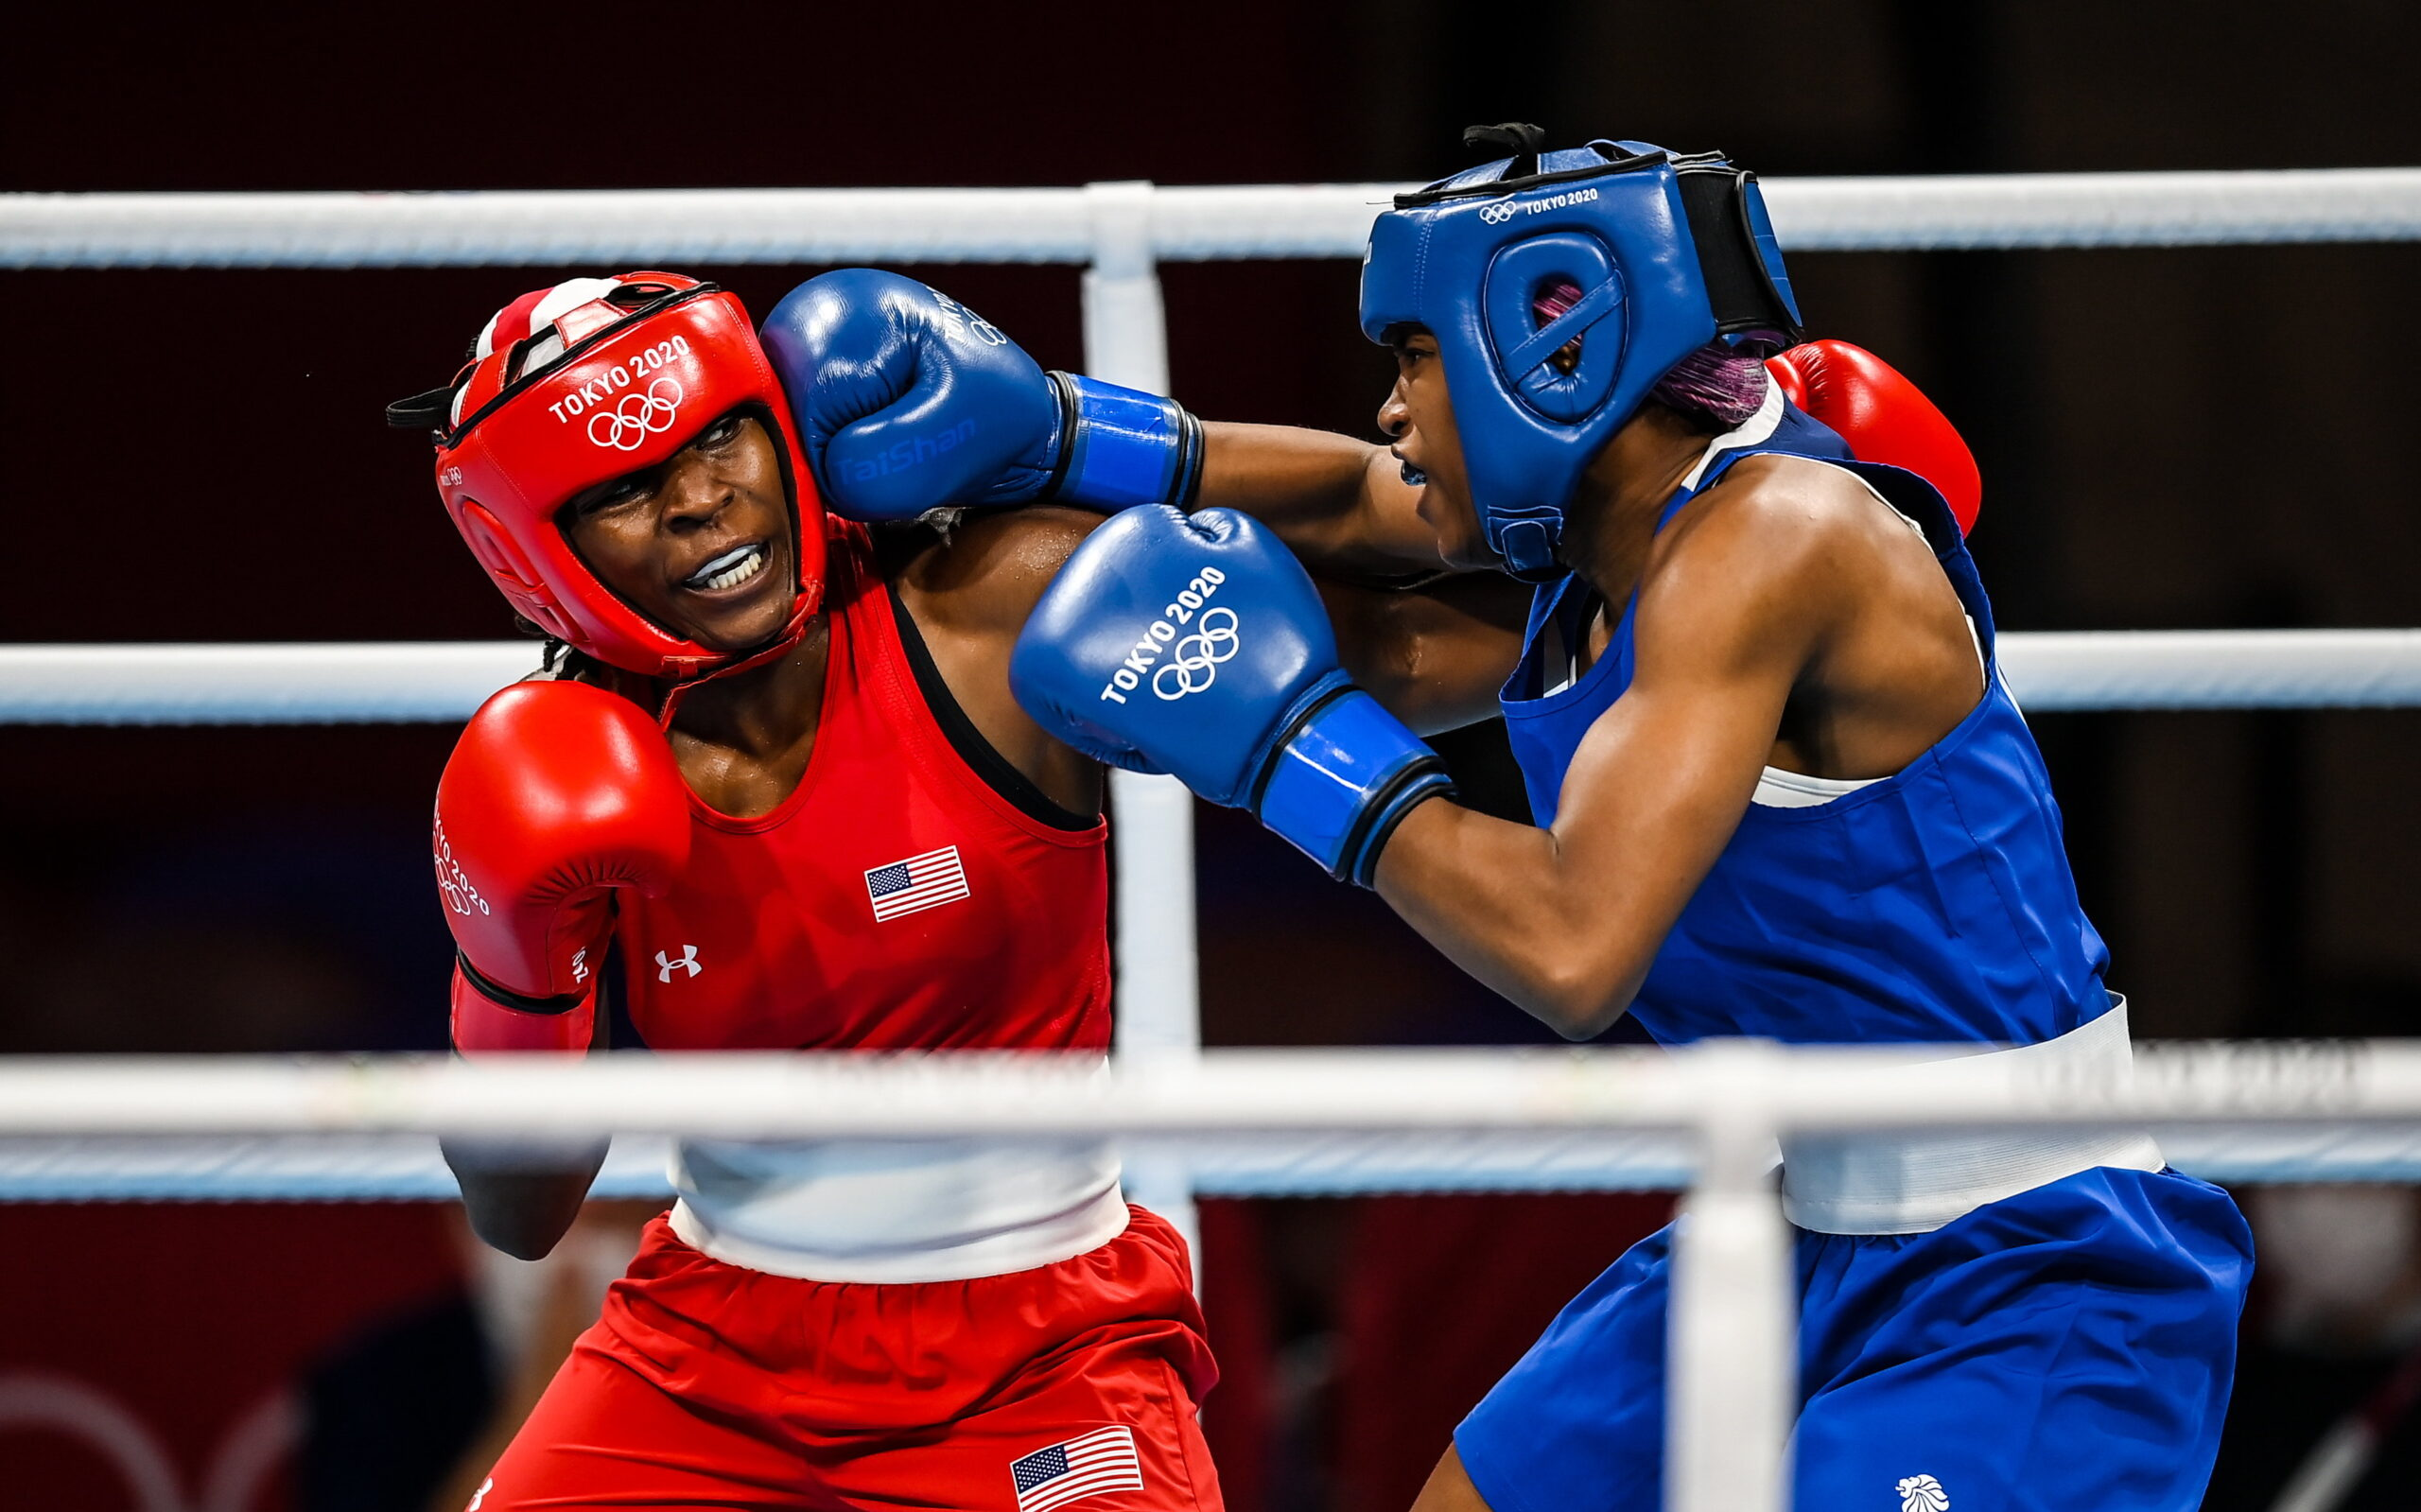 USA's Ellis falls to GBR's Dubois in Round of 16 boxing